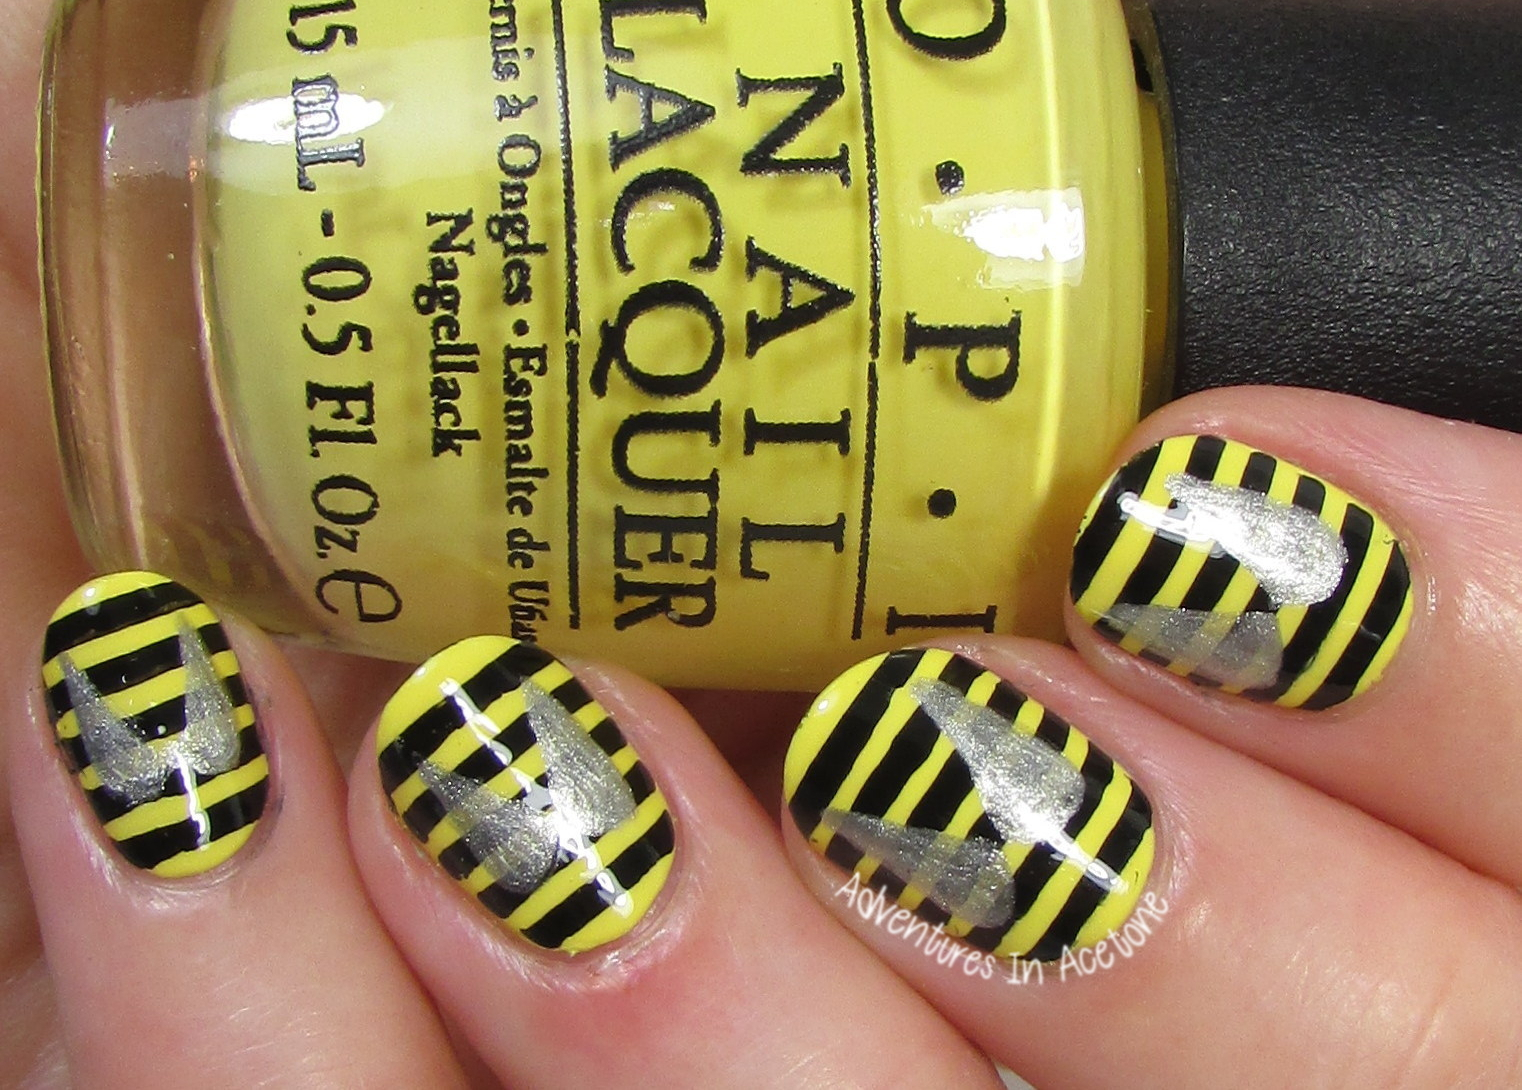 40 Great Nail Art Ideas, Insects: Bee Nail Art! - Adventures In Acetone